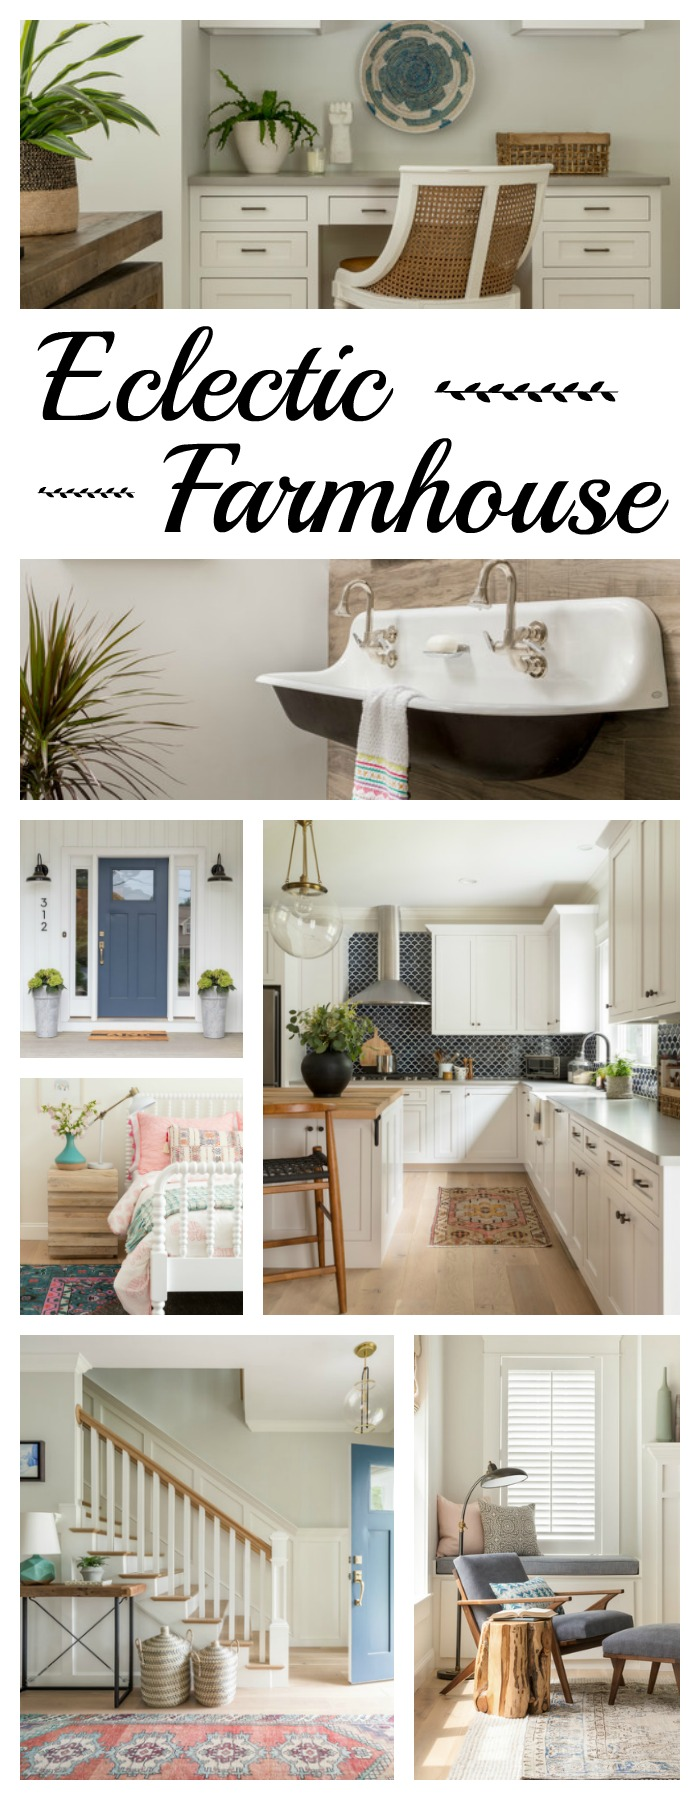 Eclectic Farmhouse: Charming Home Tour - Town & Country Living